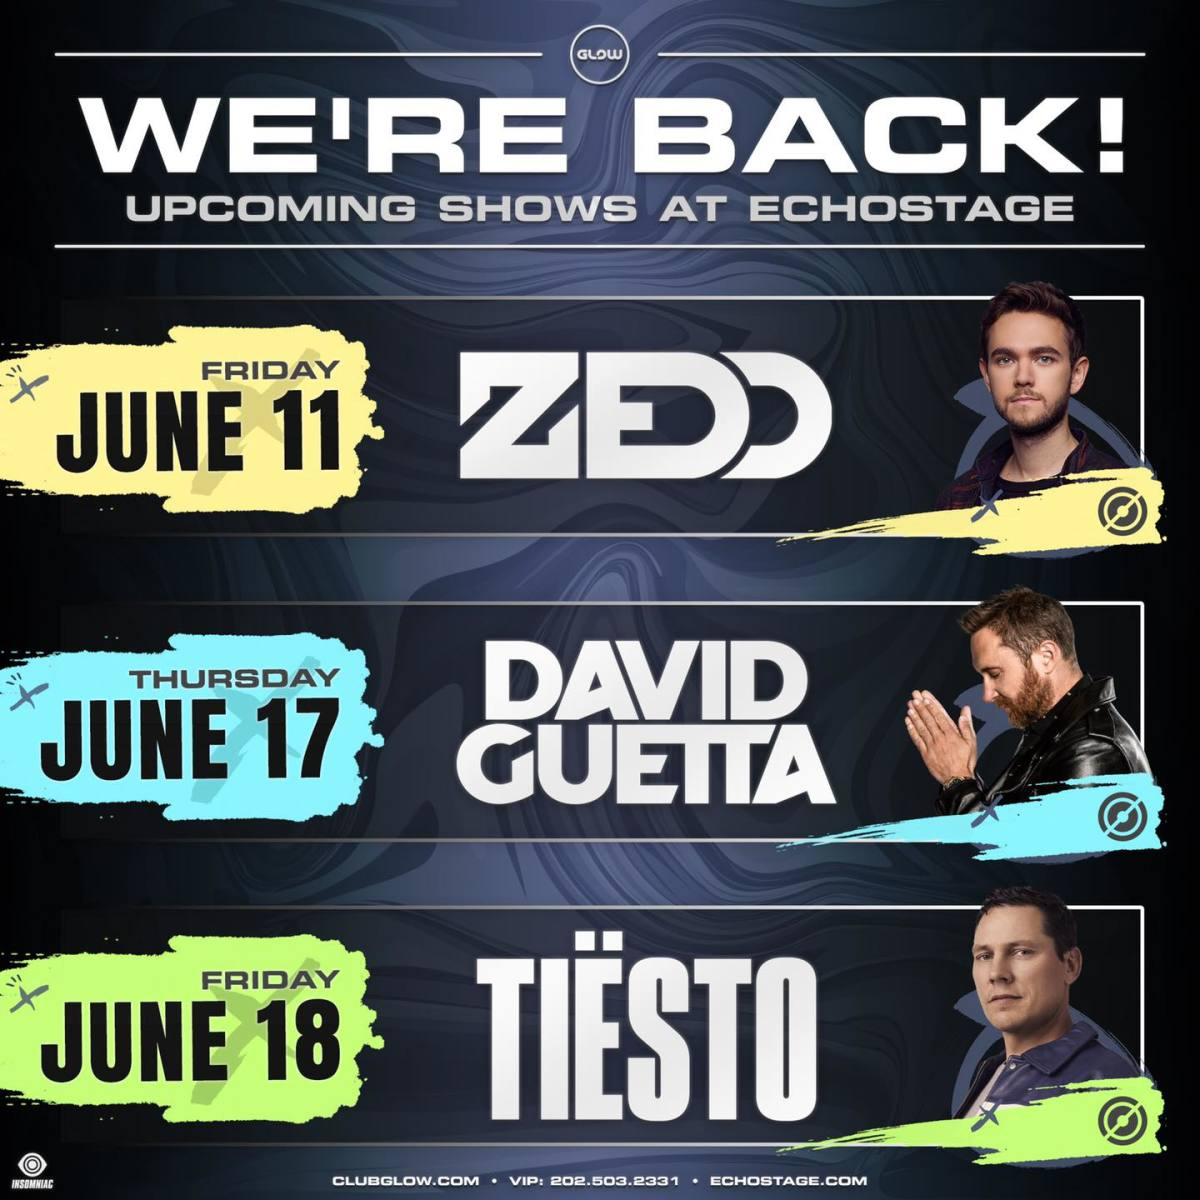 D.C. venue Echostage is set to return in June 2021 withZedd, David Guetta, and Tiësto.